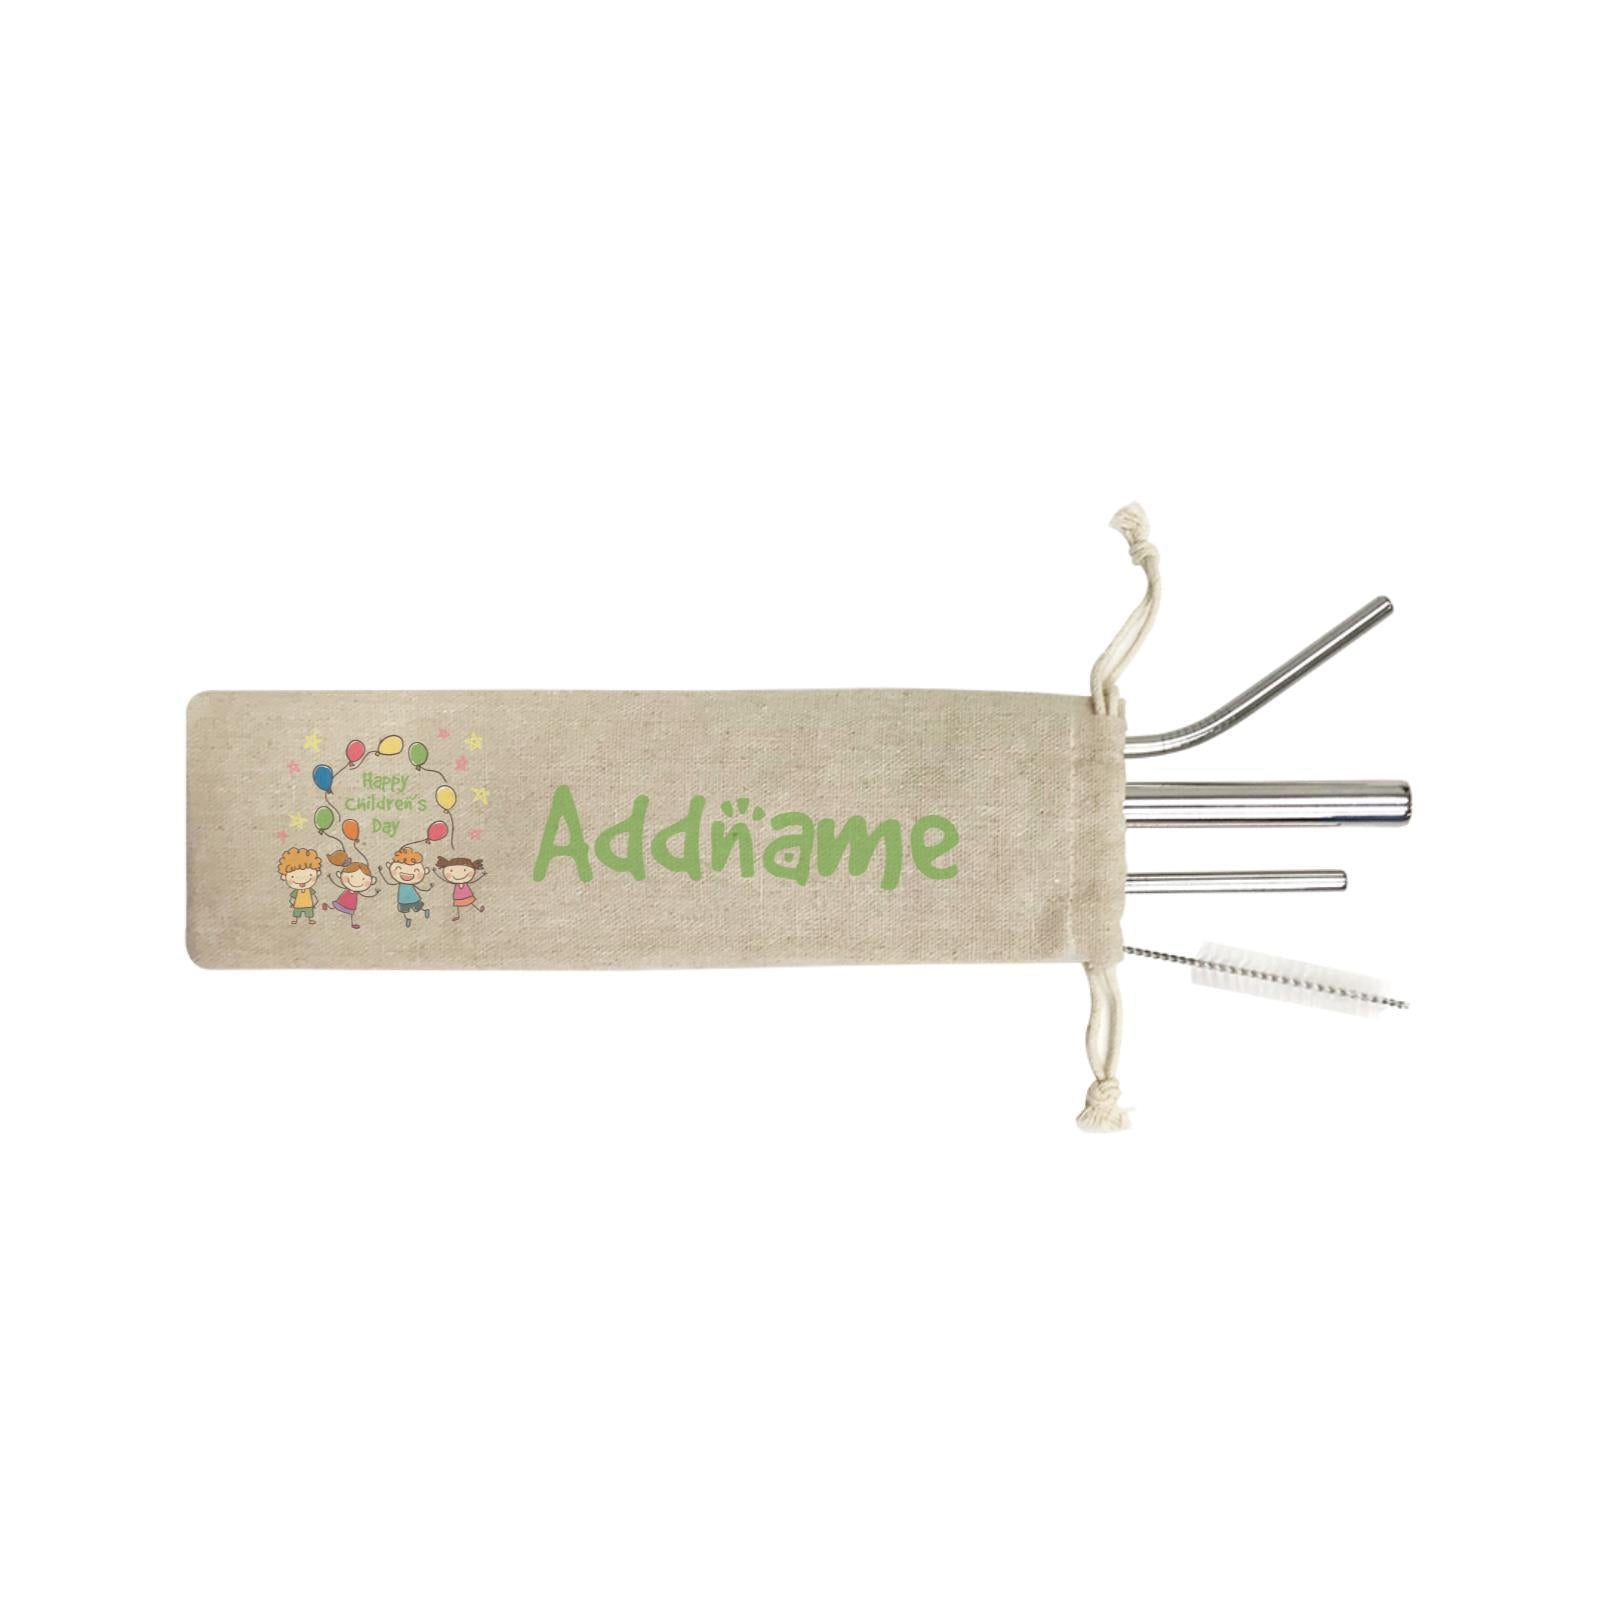 Children's Day Gift Series Four Cute Children With Balloons Addname SB 4-in-1 Stainless Steel Straw Set In a Satchel